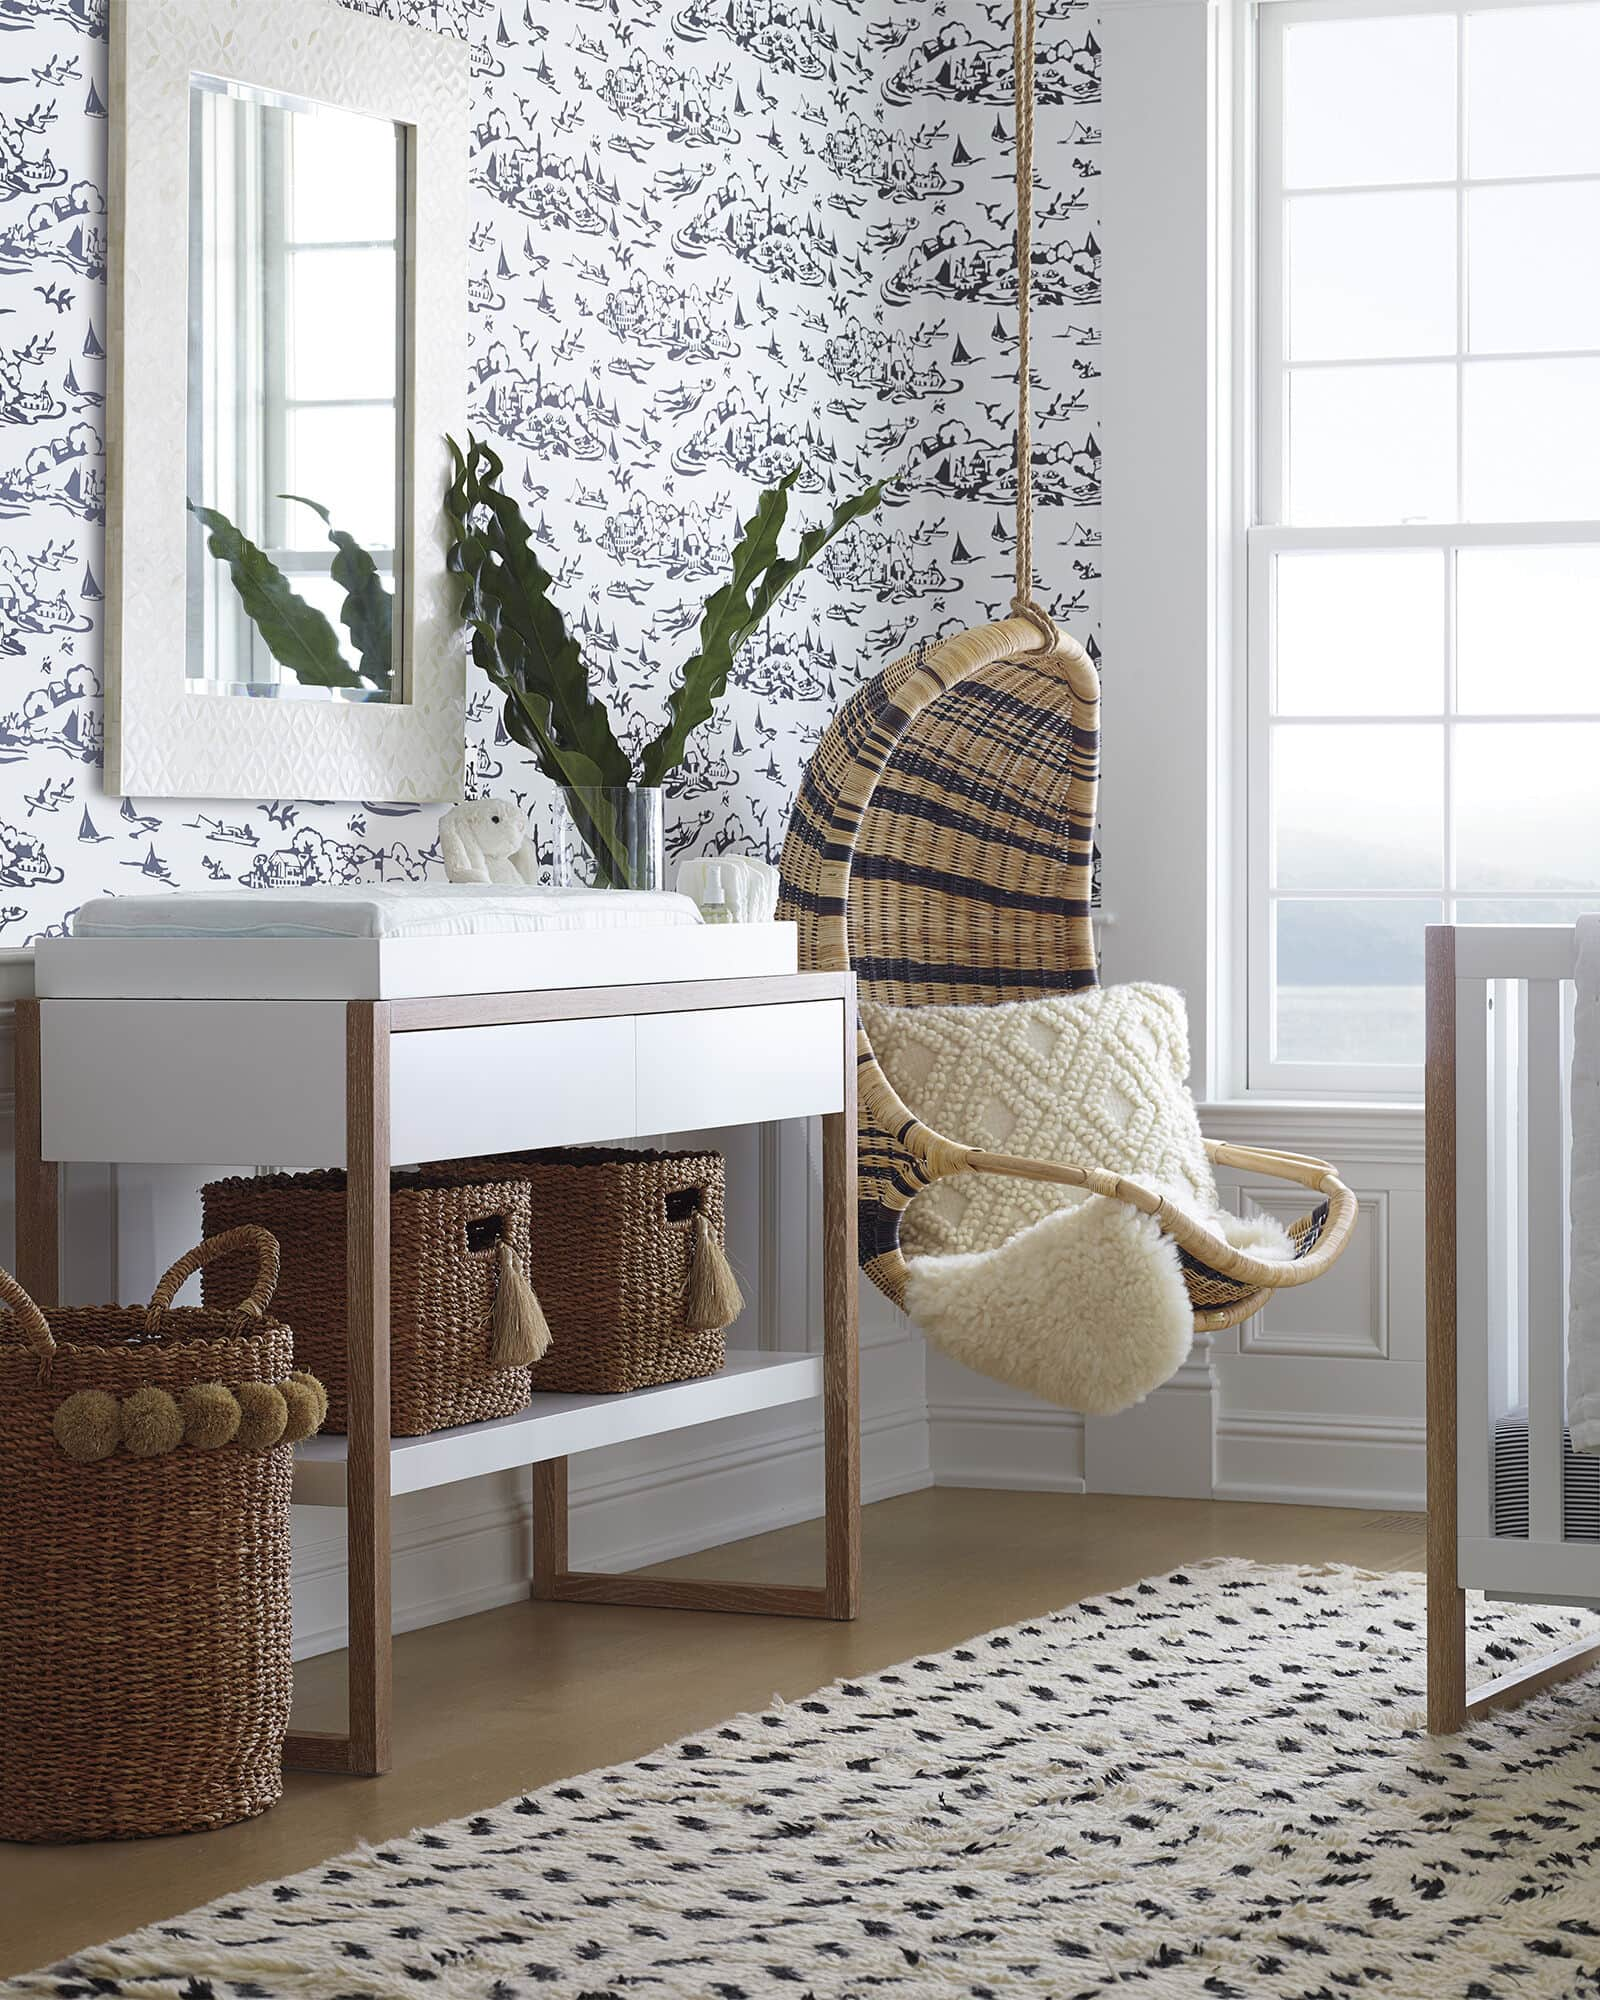 Use this Changing Table to Create an Earthy Toned Nursery